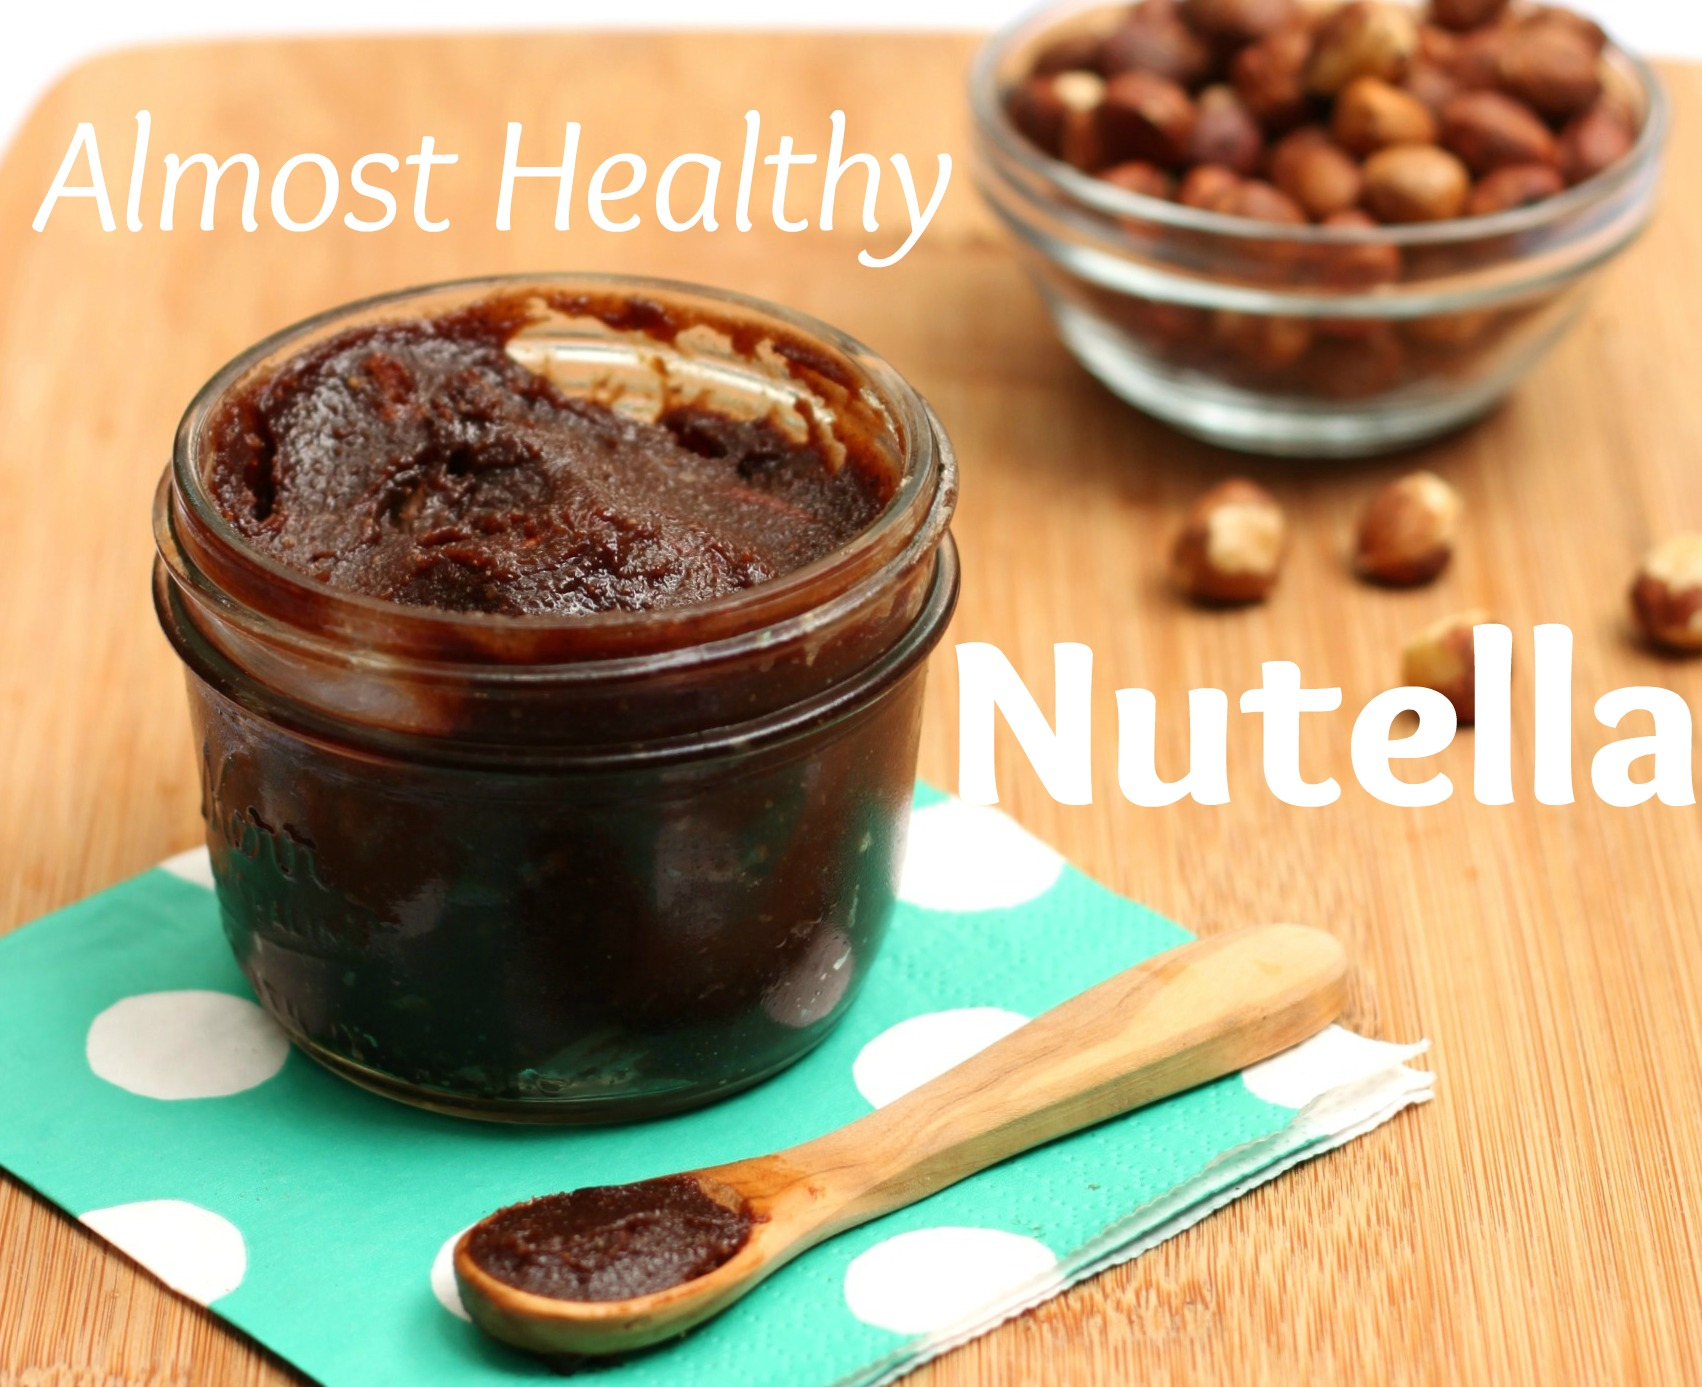 Recipe: Almost Healthy Homemade Nutella